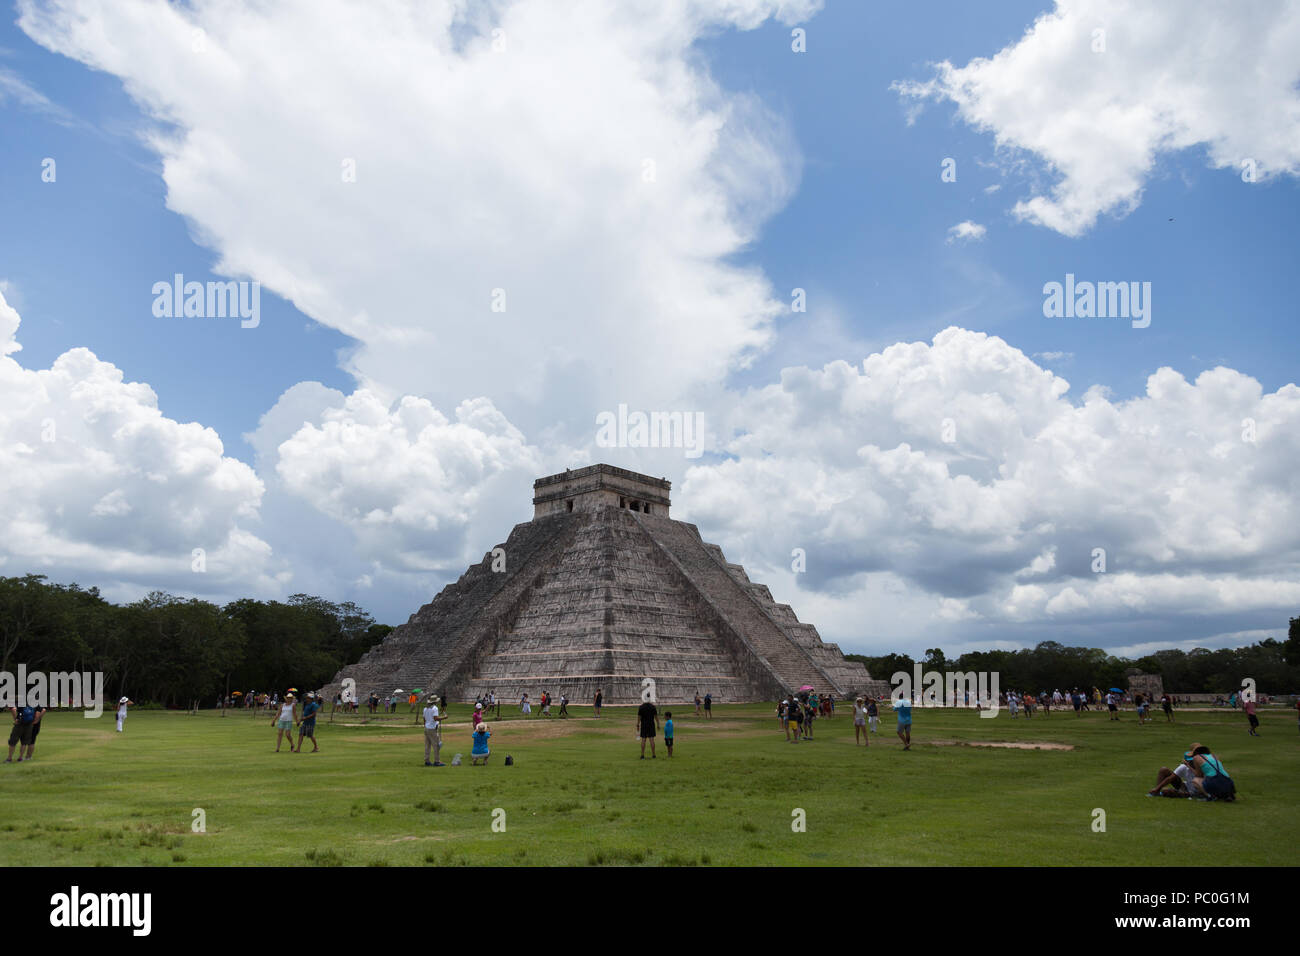 A group of tourist at 'Temple of Kukulkan (El Castillo)' most famous pyramid at Chichén-Itzá archeological site in the Yucatan peninsula Mexico. - Stock Image